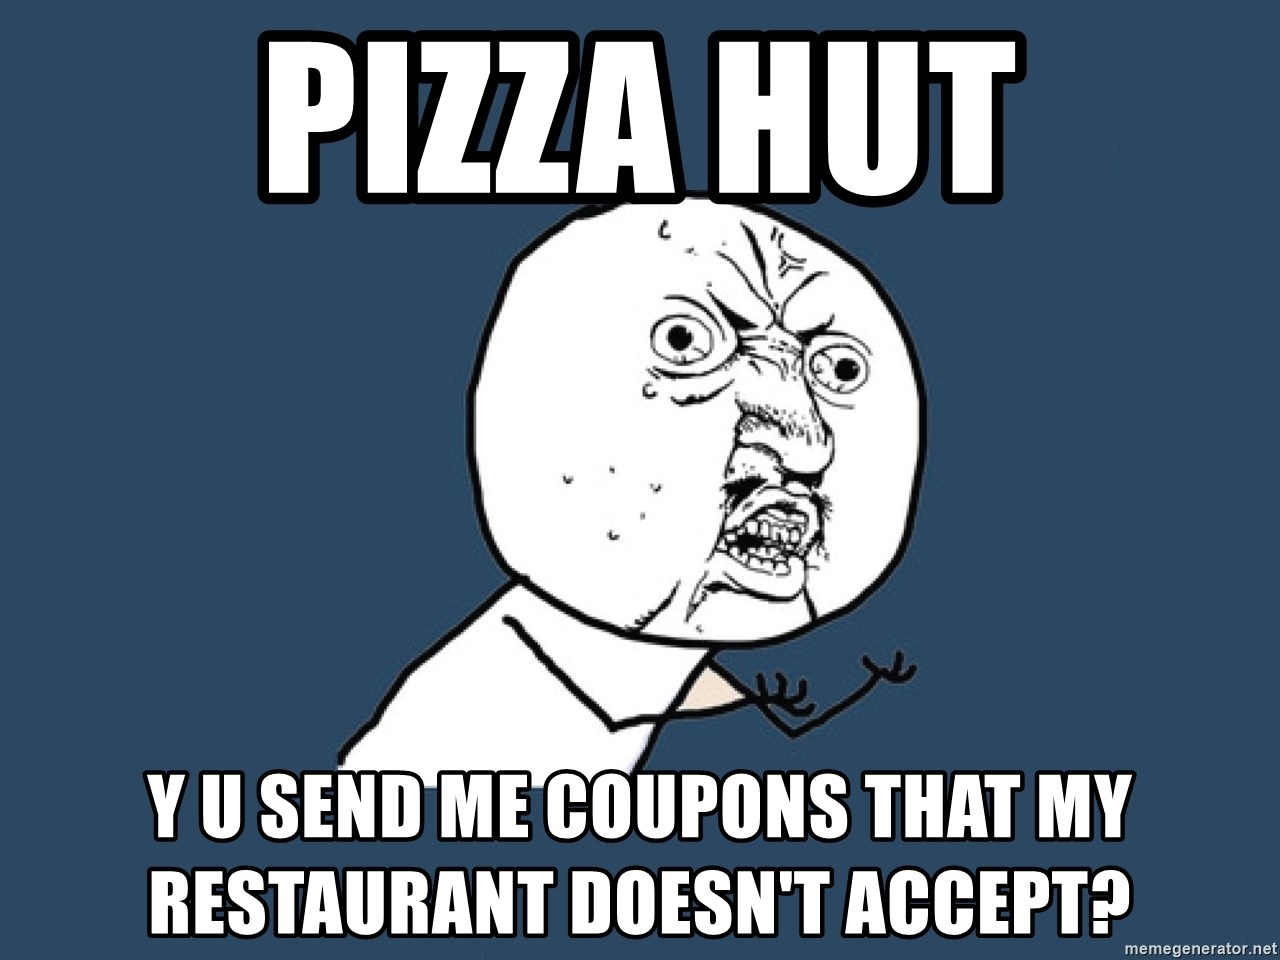 Y U No - Pizza Hut y u send me coupons that my restaurant DOESN'T accept?